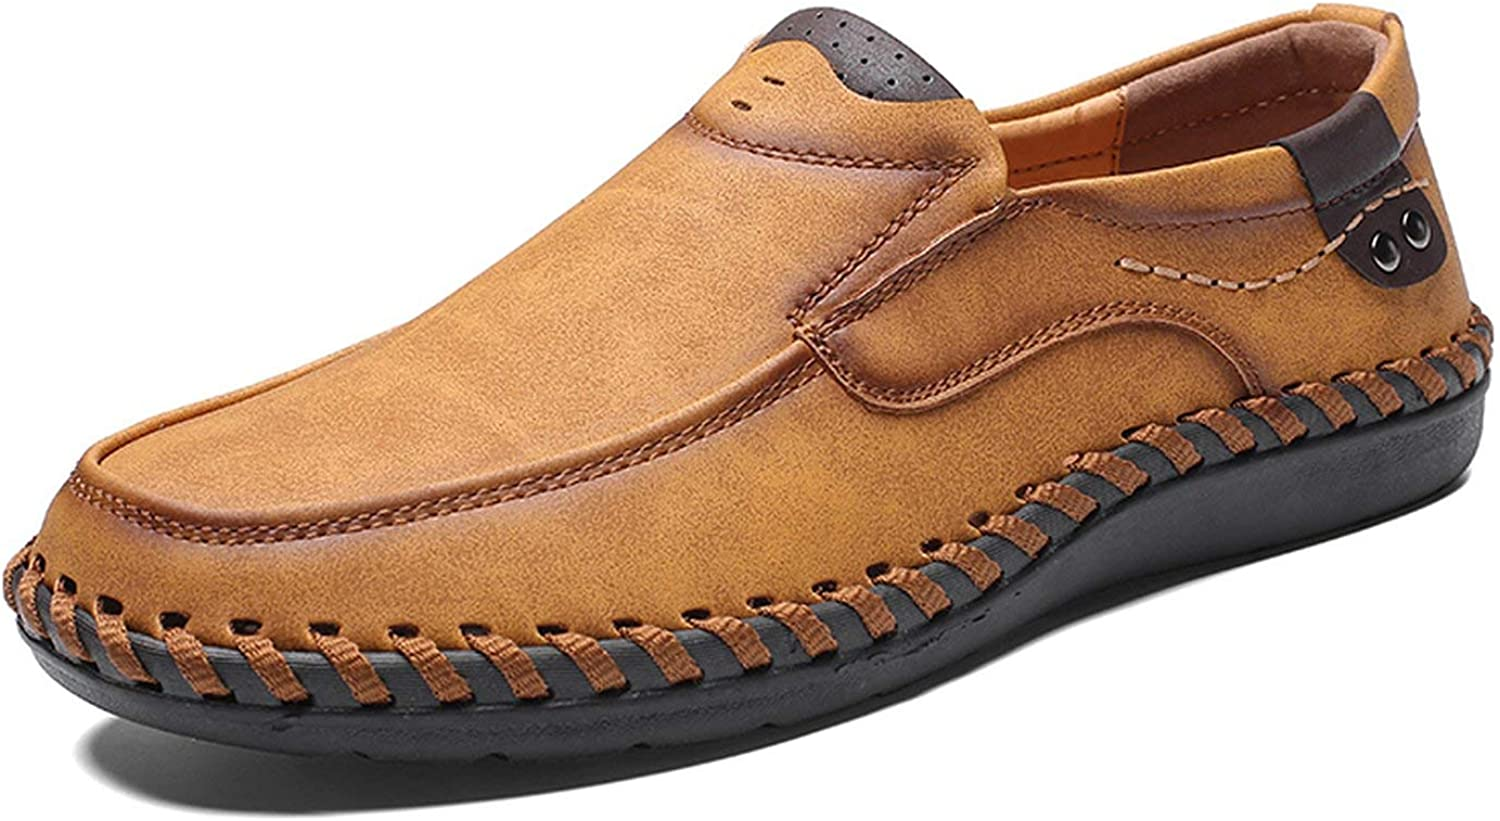 ALWAYS ME Men Casual Driving shoes Leather Loafers shoes Soft Breathable Moccasins Flats Slip on Footwear